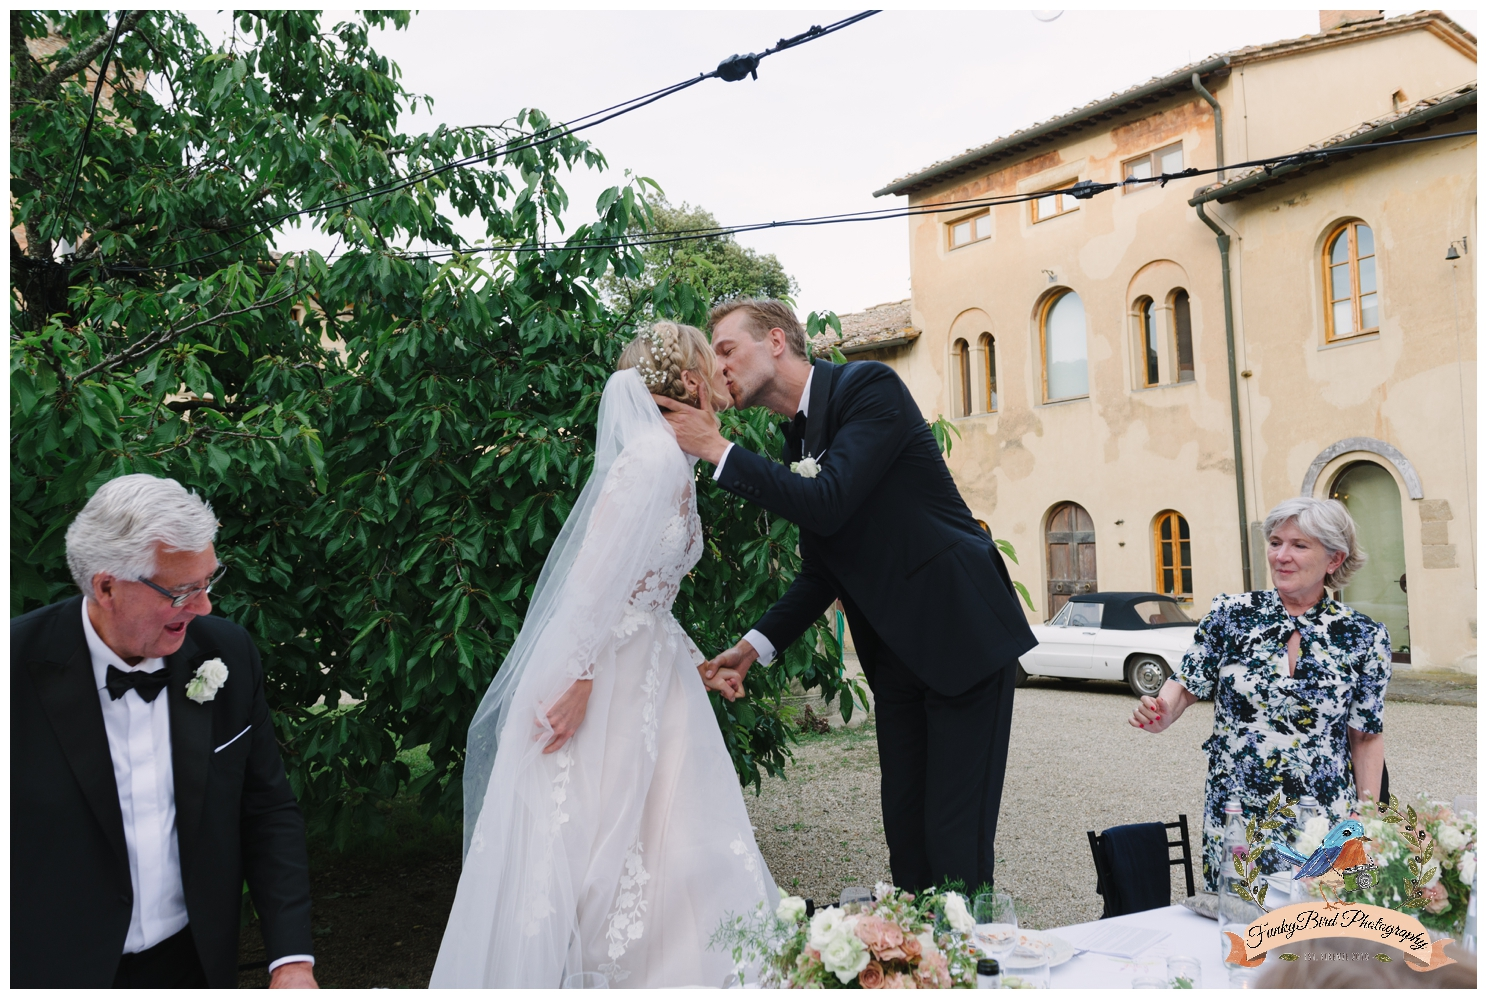 Wedding_Photographer_Tuscany_Bryllupsfotograf_0082.jpg